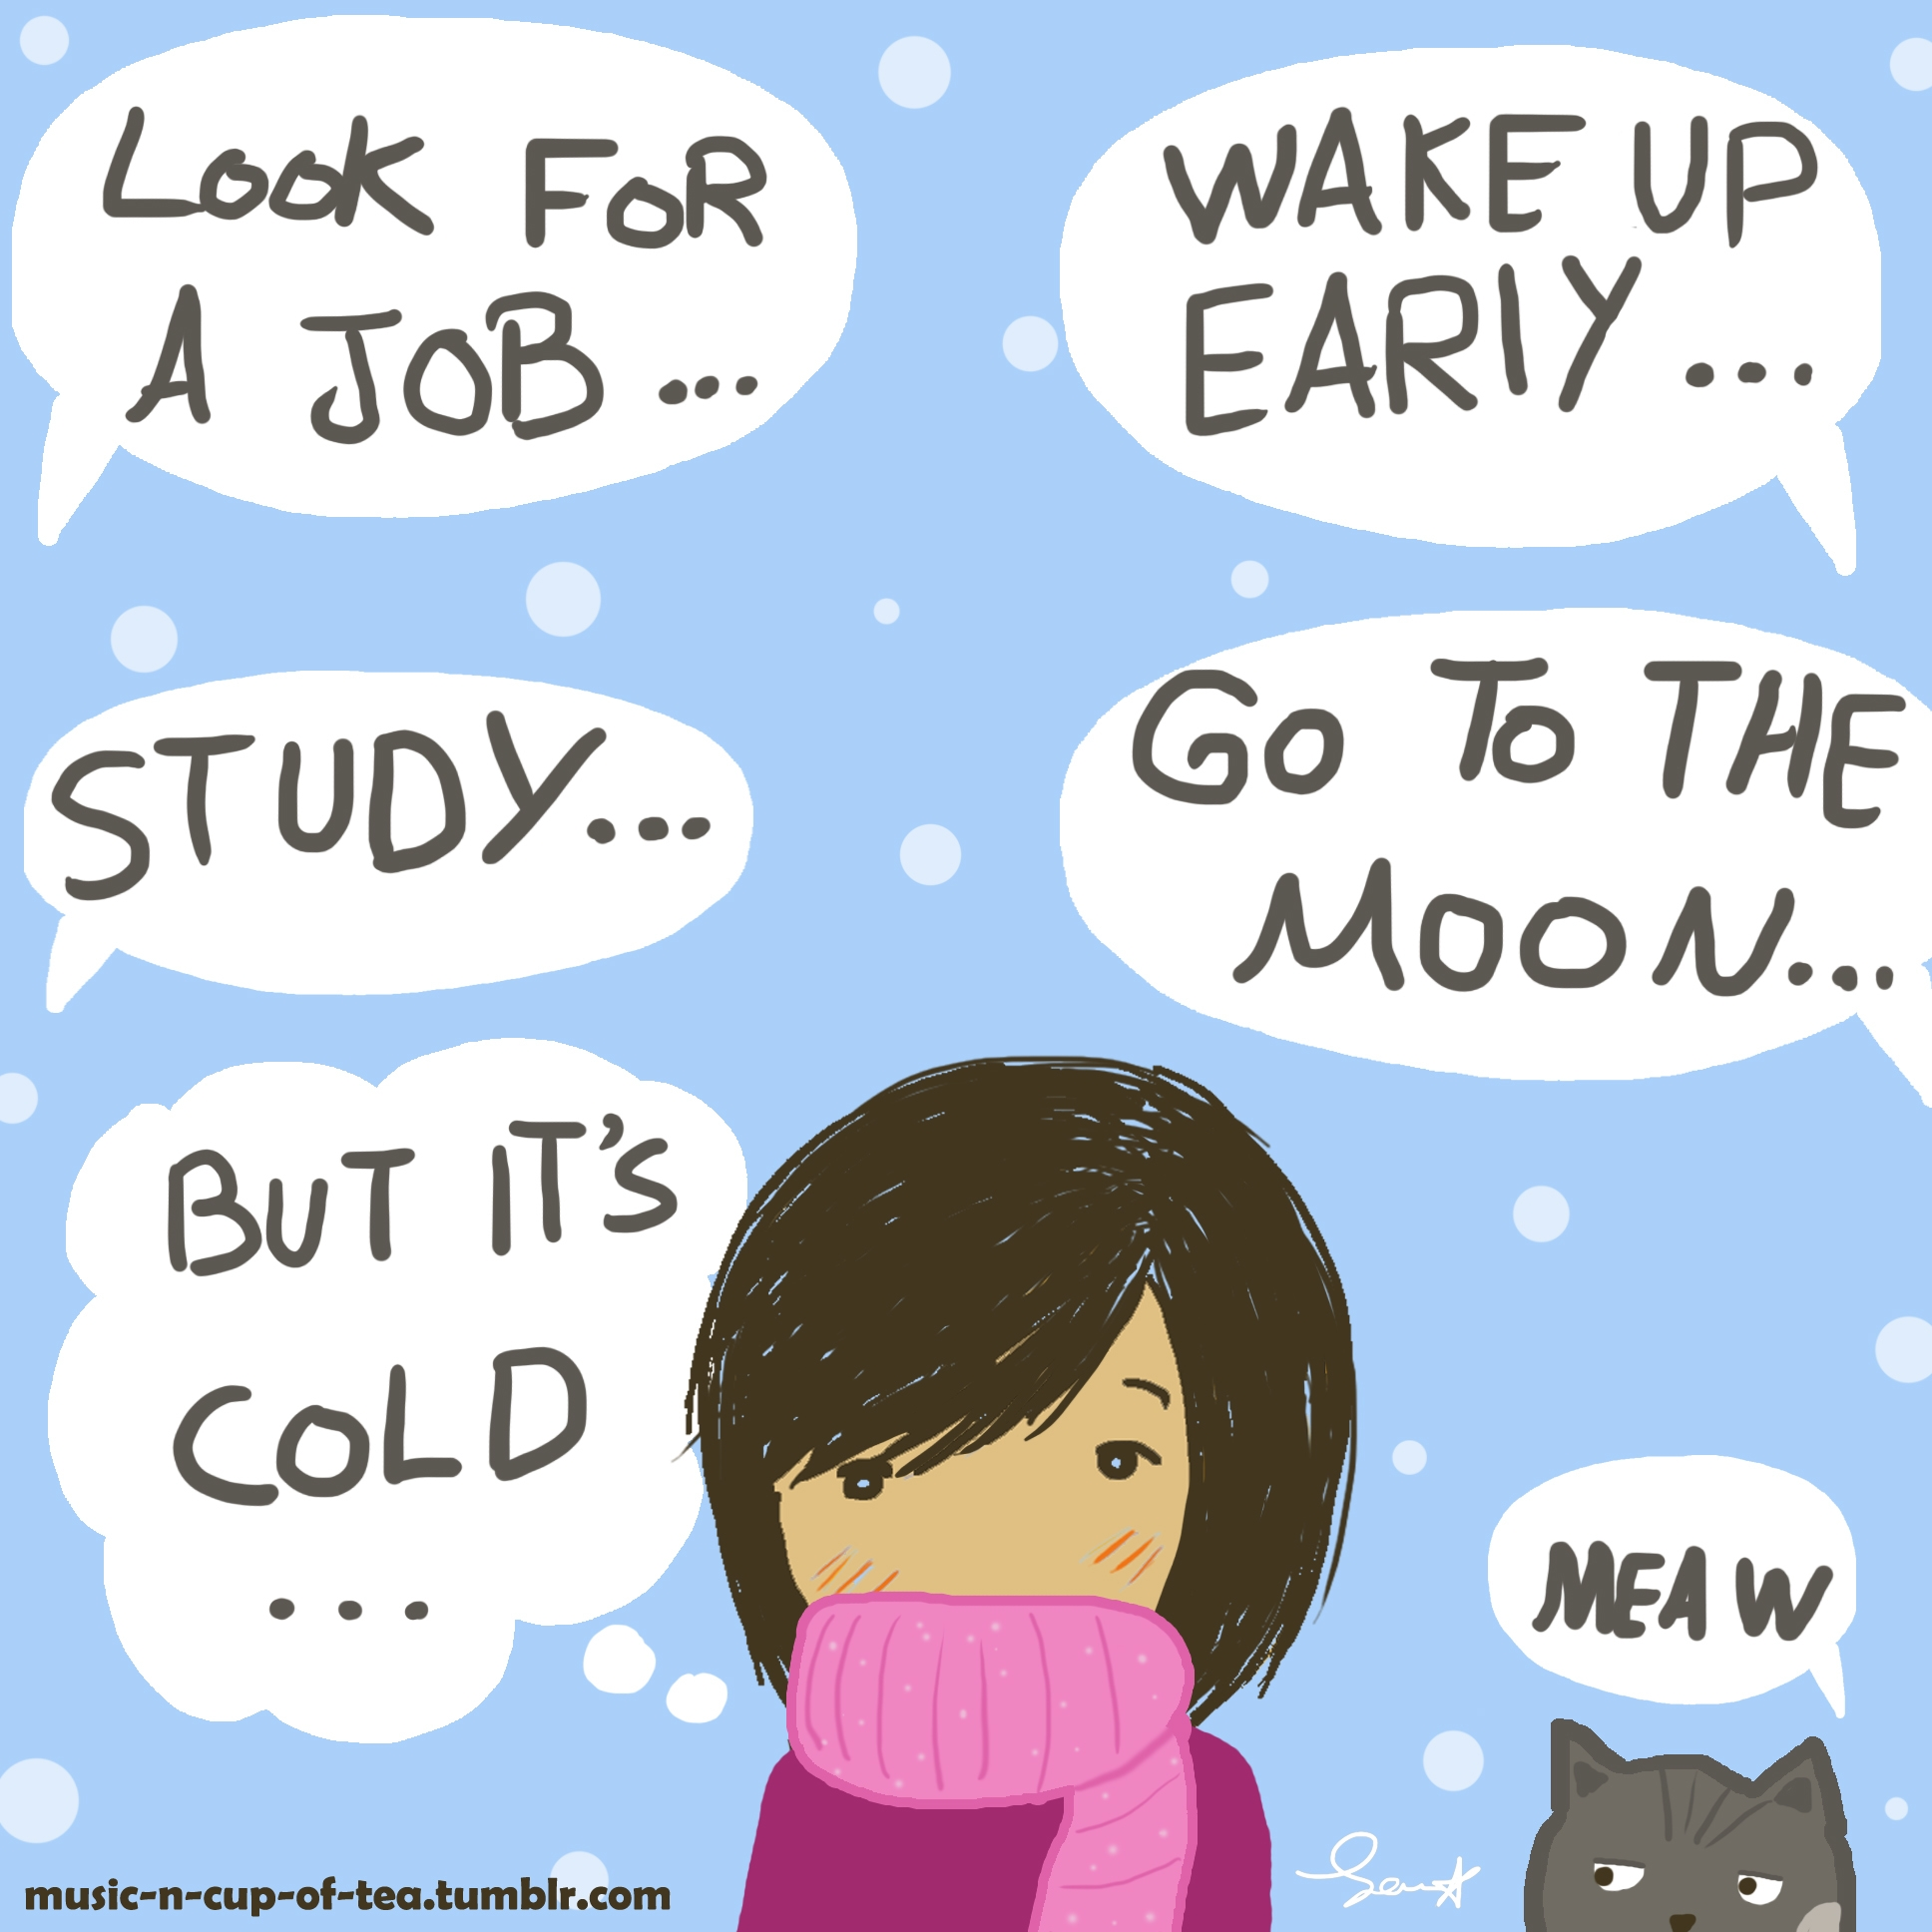 cold  - comics, webcomics, art, winter - samira-4834 | ello